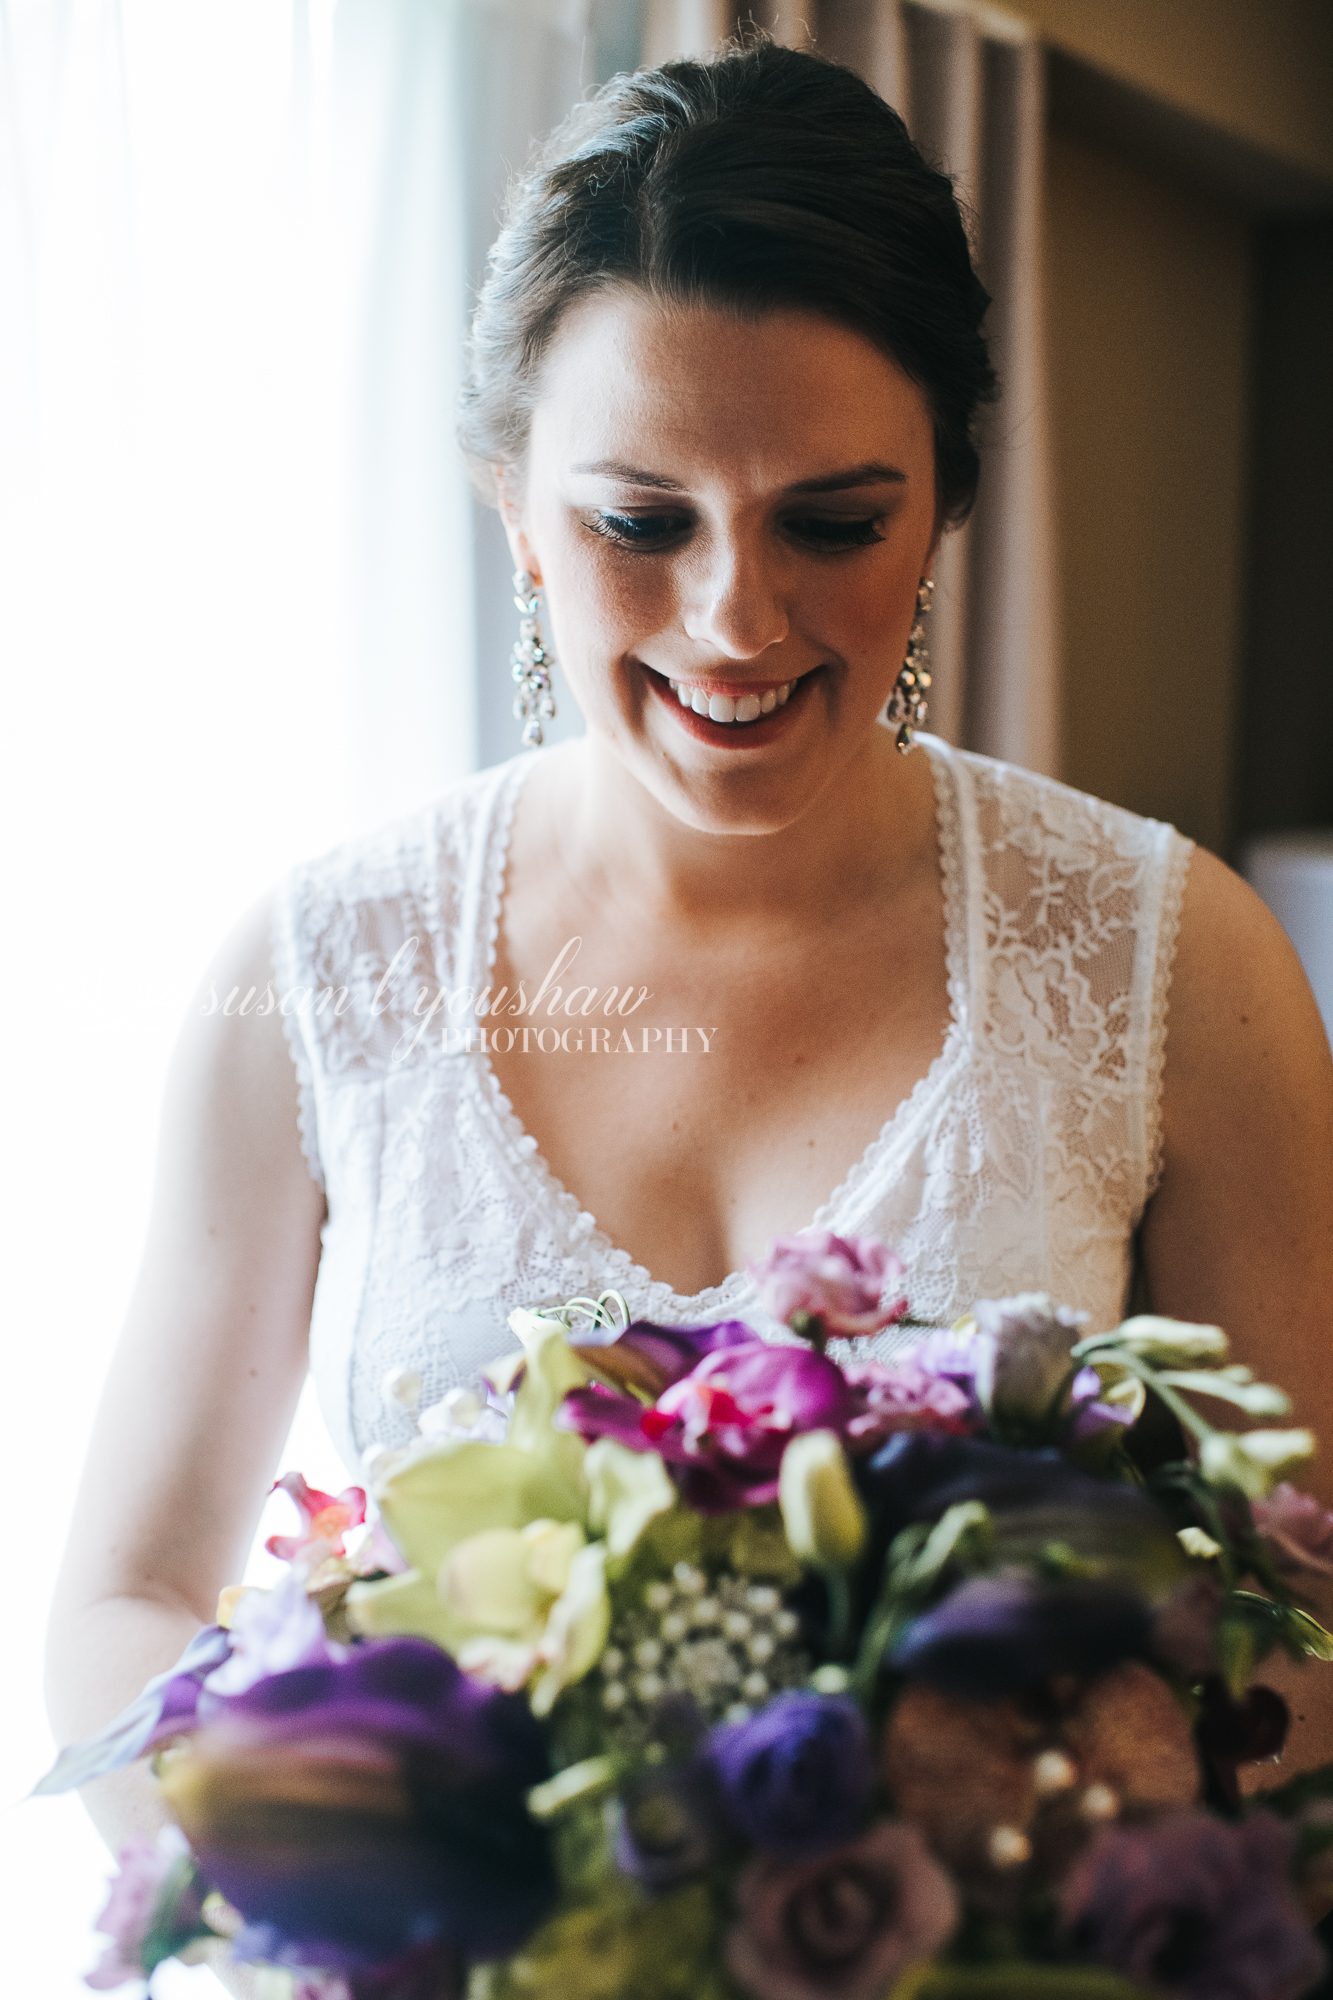 Adena and  Erik Wedding 05-17-2019 SLY Photography-12.jpg